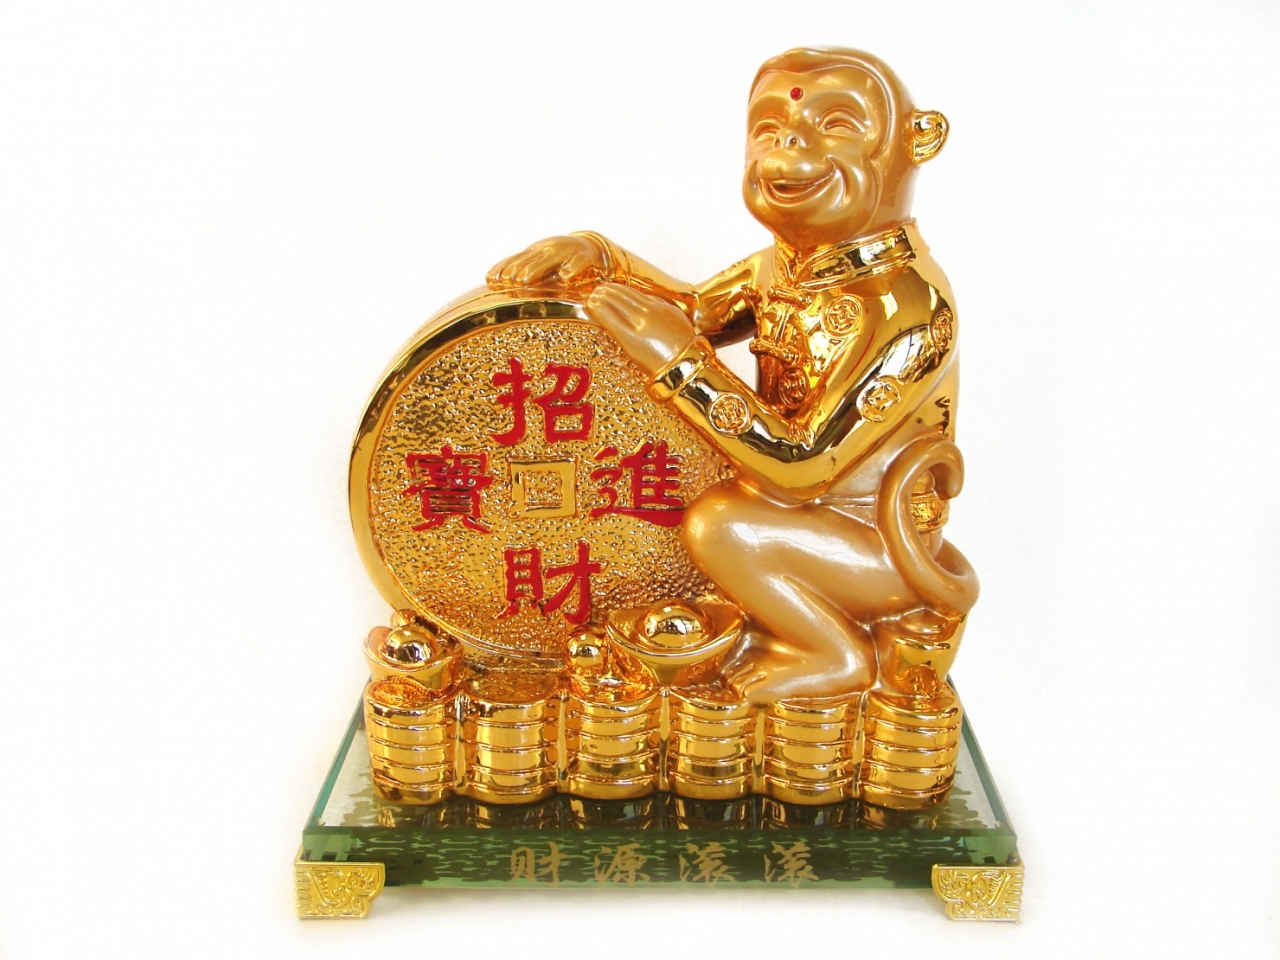 Golden Monkey Statue with Feng Shui Coin for Year of